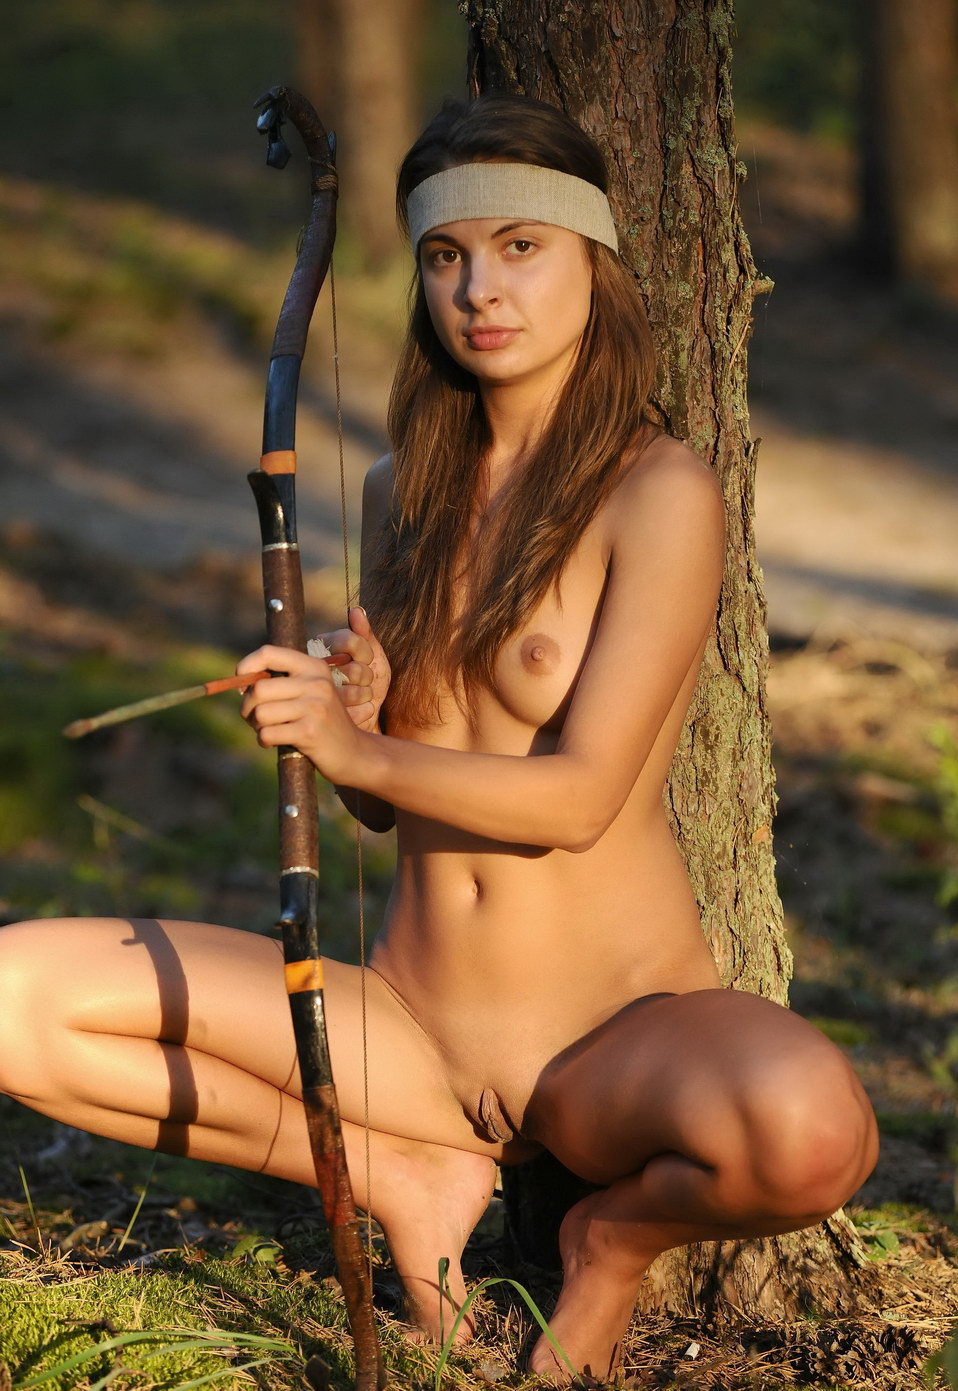 Topless warrior chick gifs sex picture